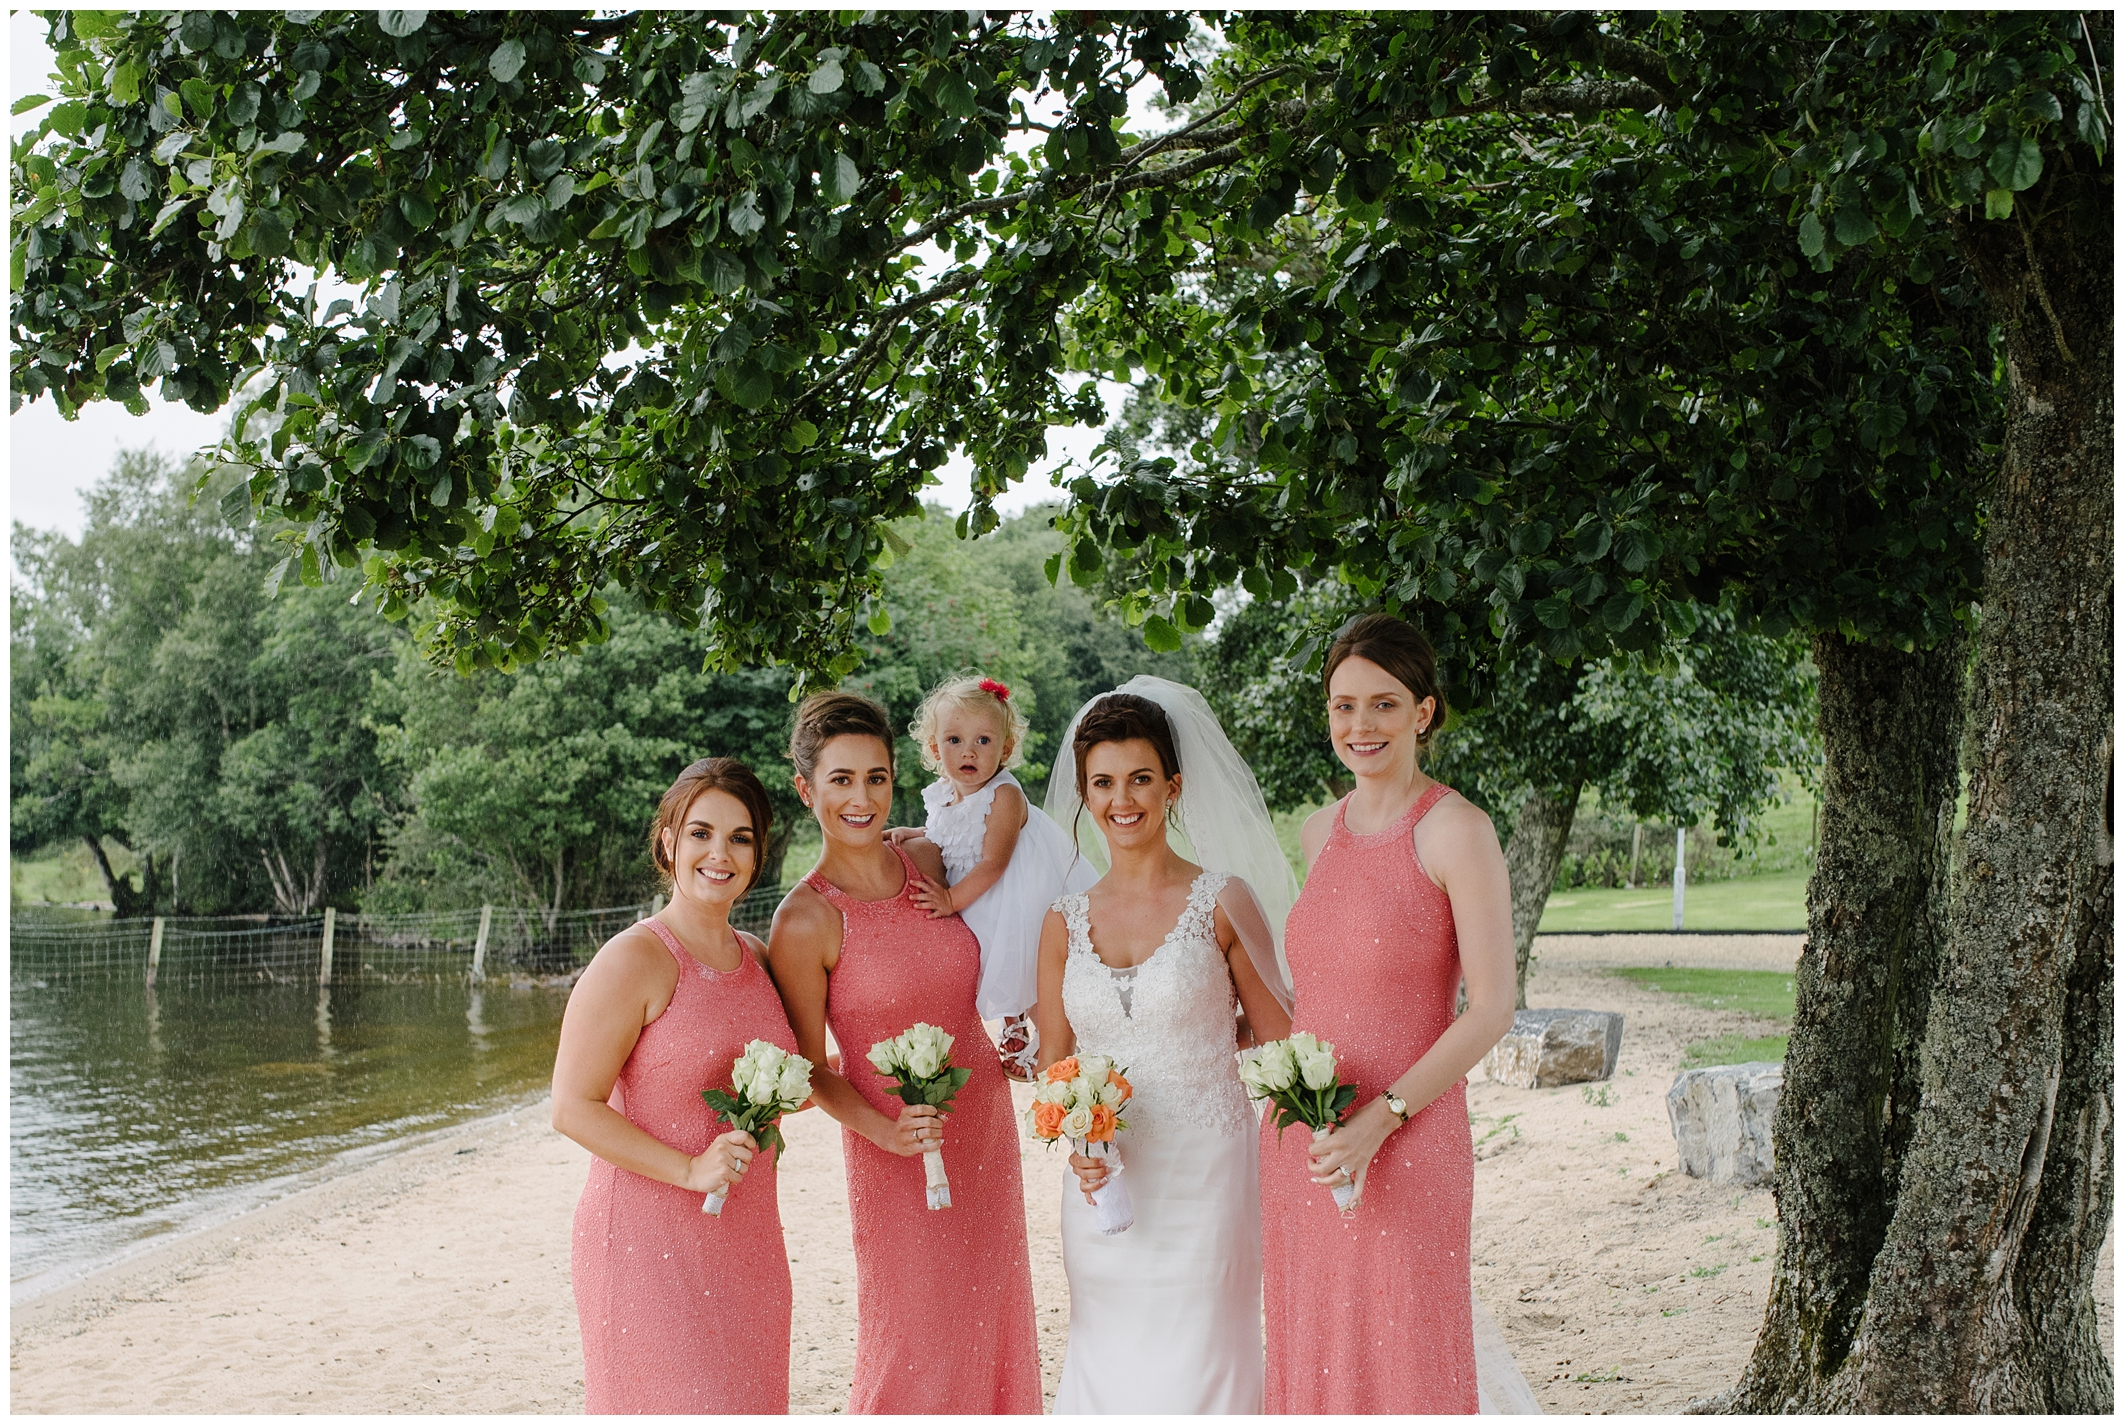 Lynsey_Andy_Rossharbour_Fermanagh_wedding_jude_browne_photography_0118.jpg